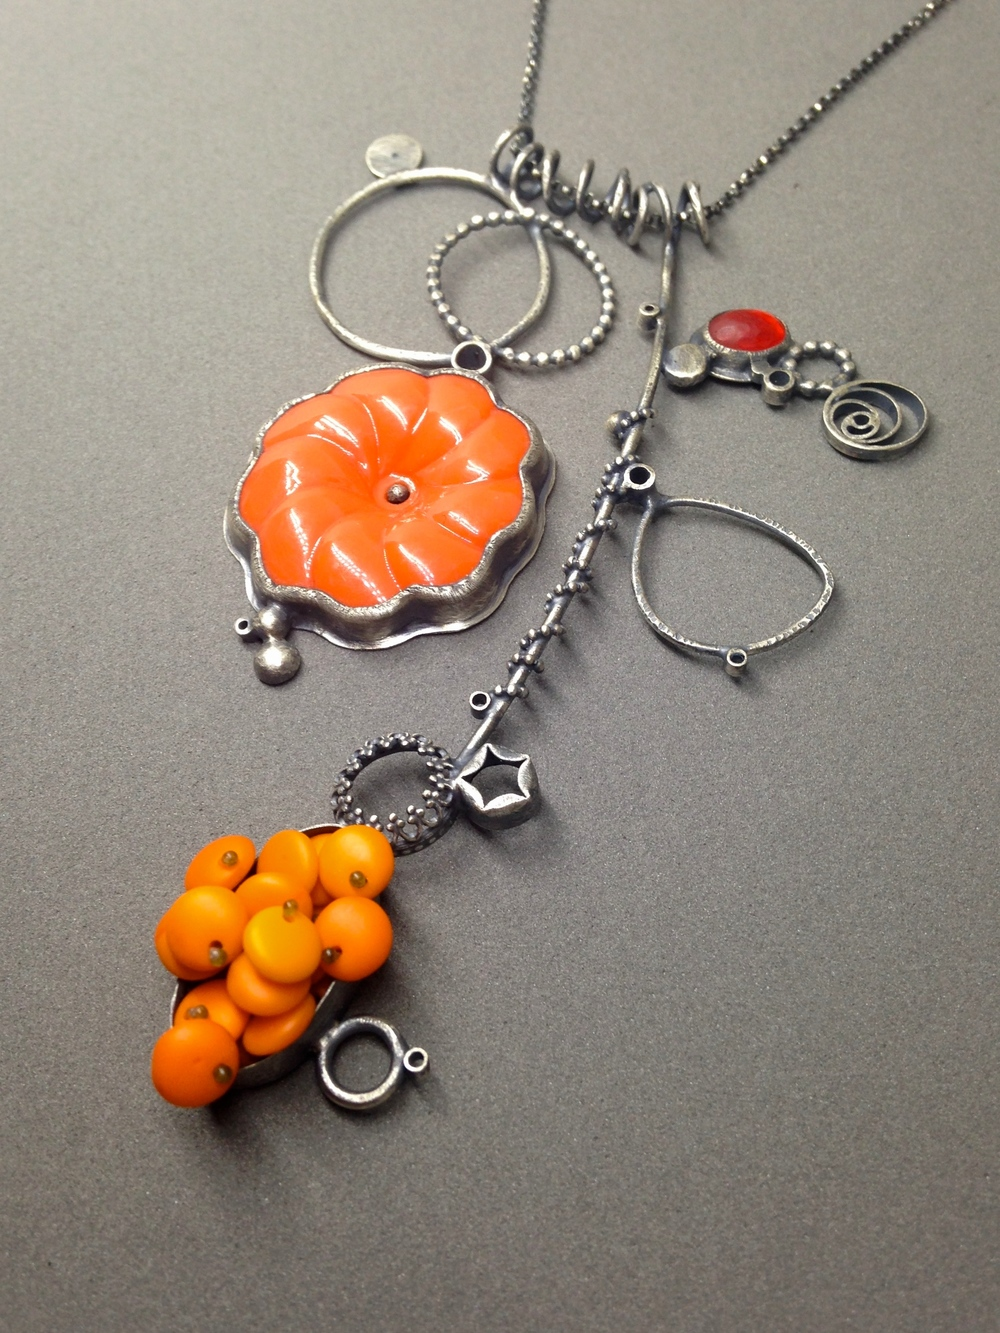 orange polyp collage necklace: